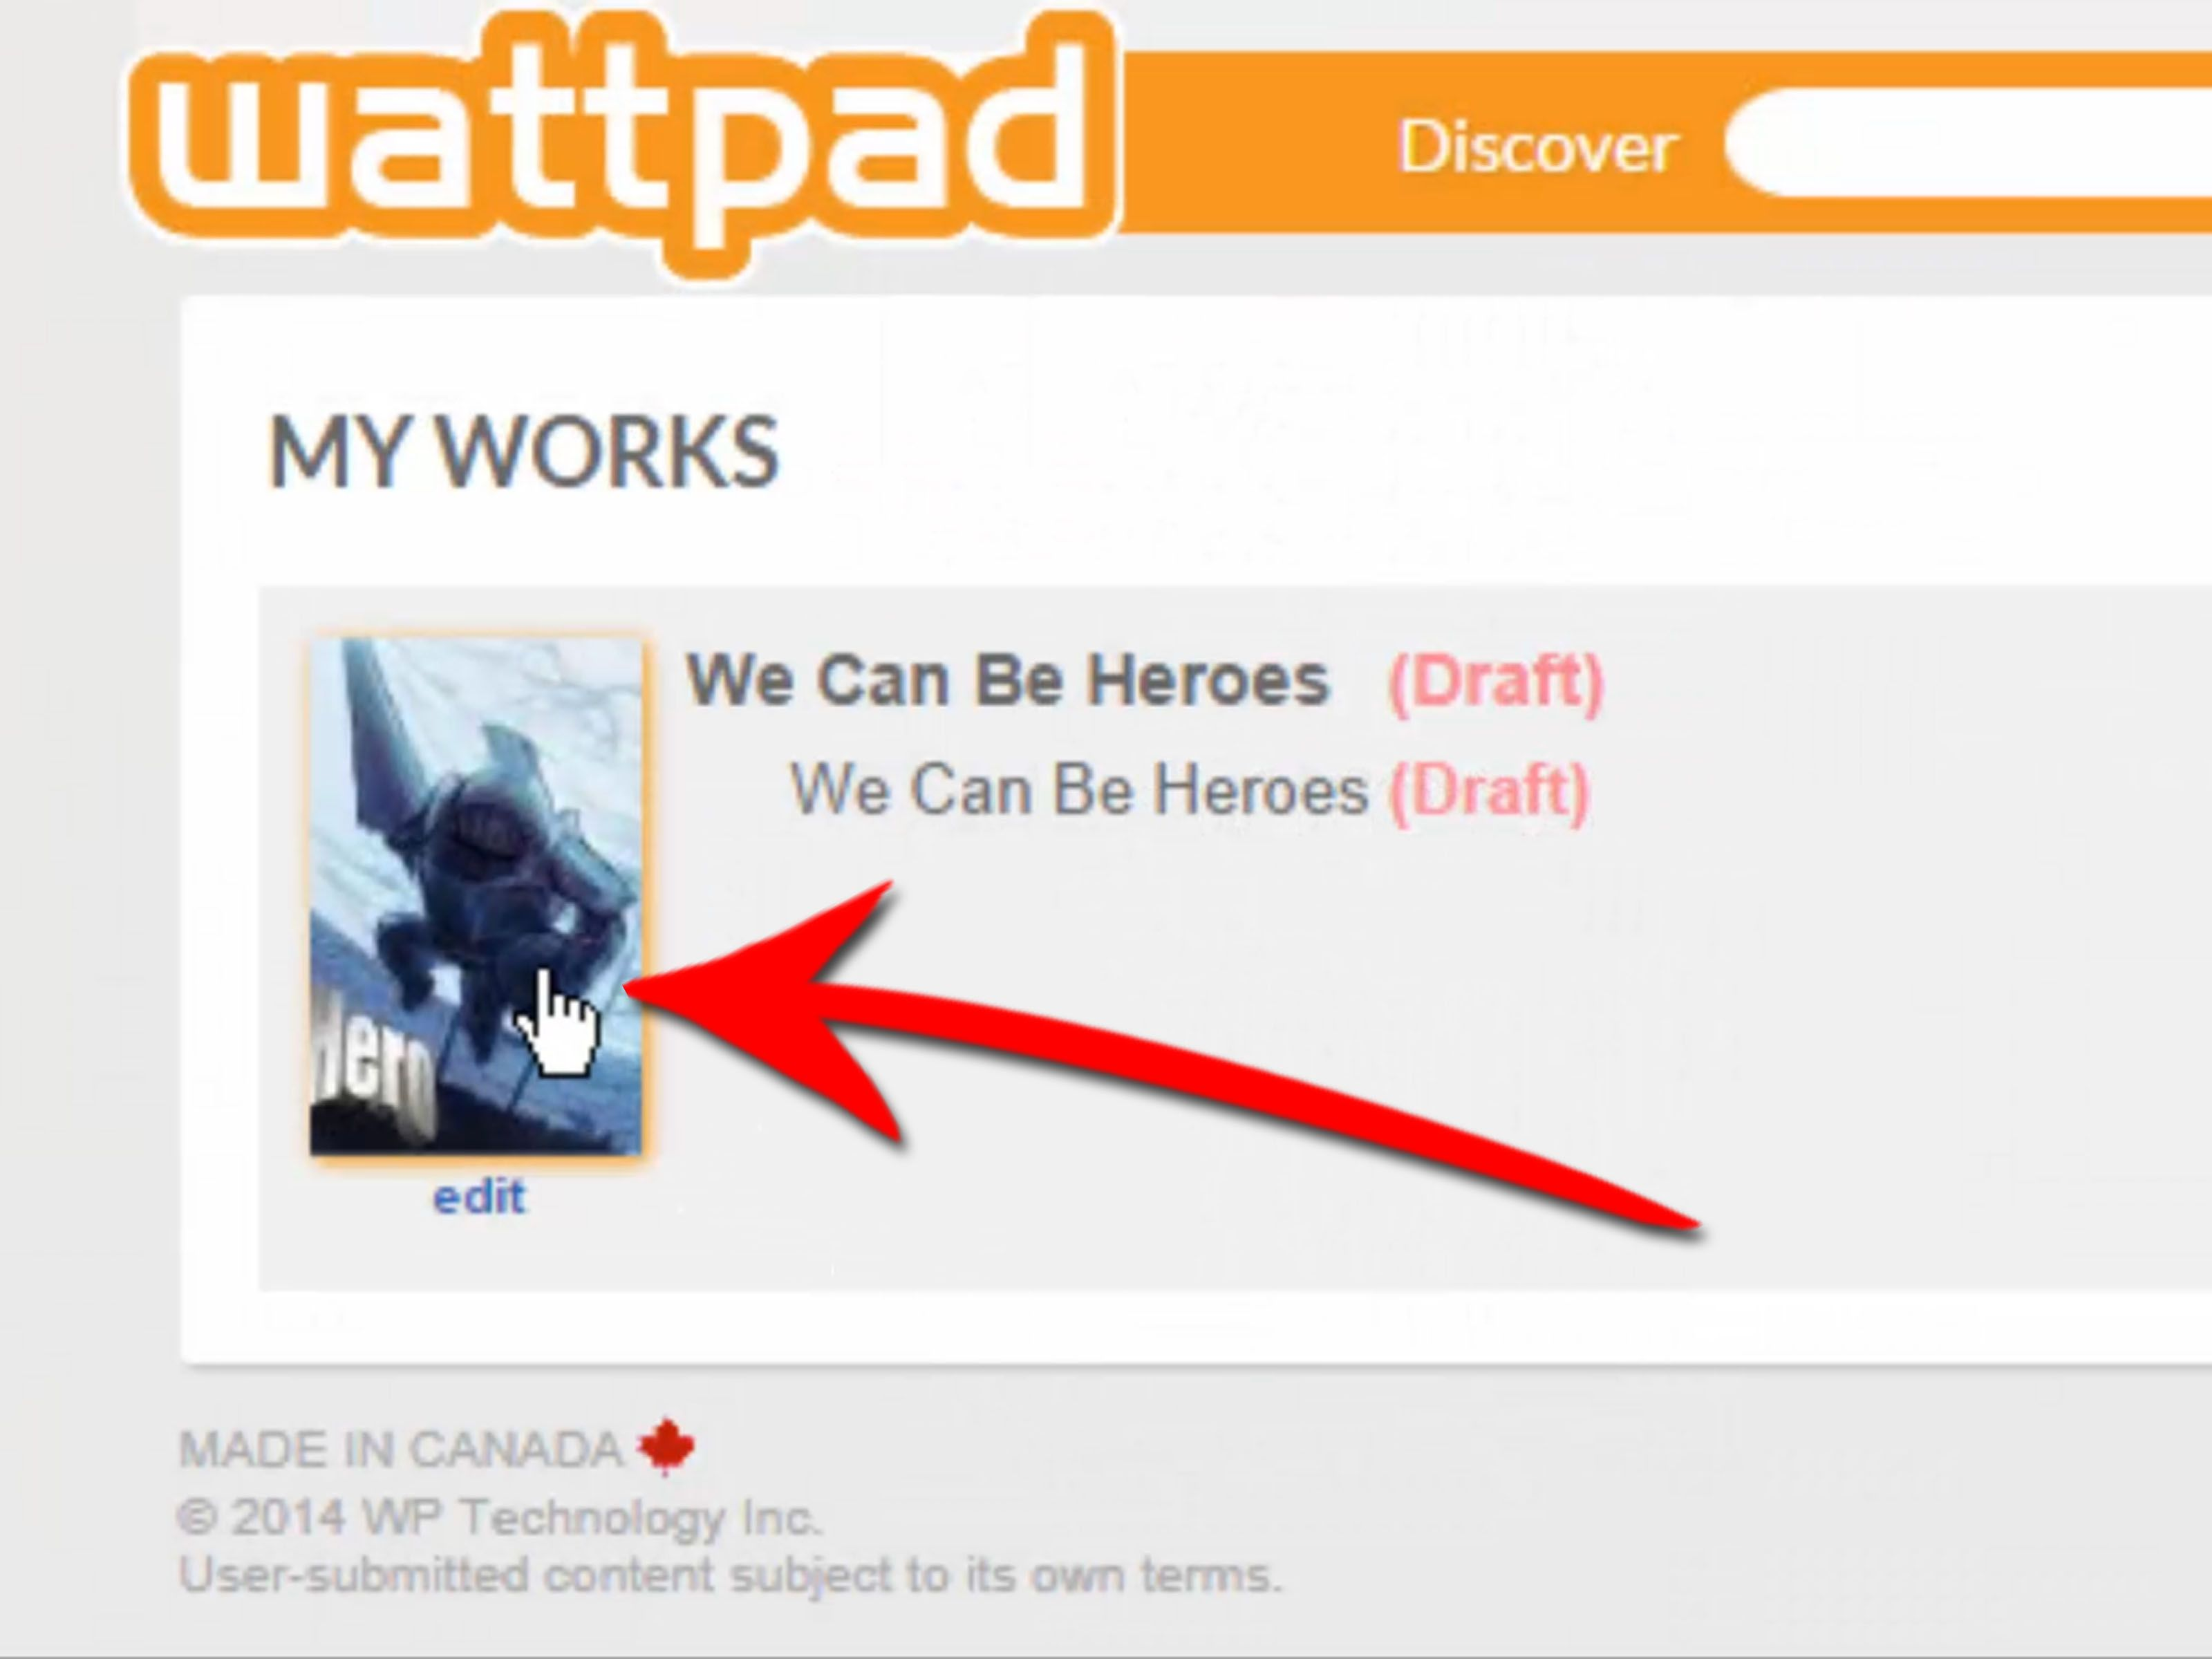 How To Make A Book Cover Wikihow ~ Make a book cover for wattpad wattpad book covers and books